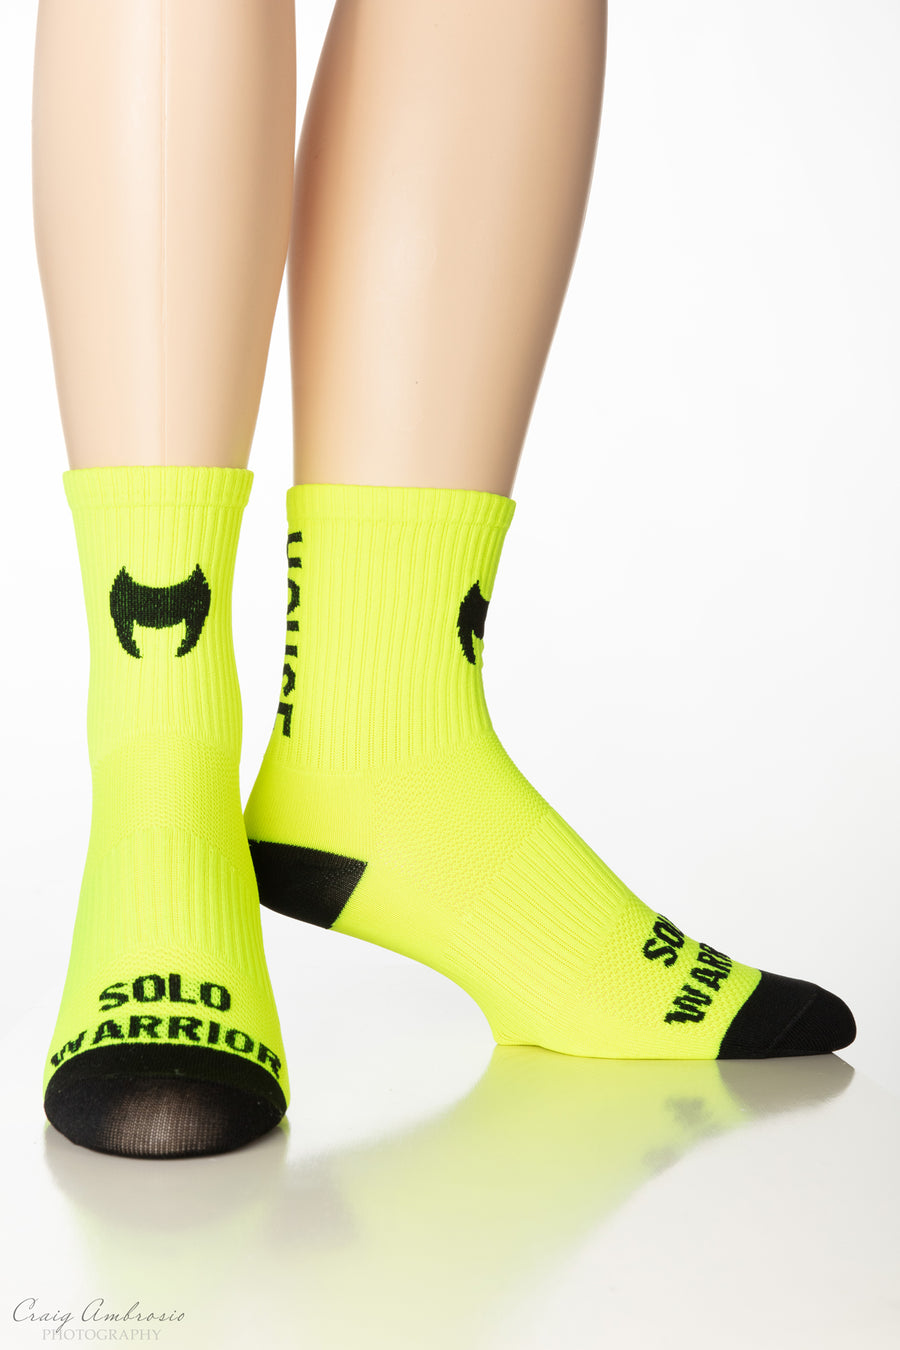 WARRIOR POWER HOUSE Men's and Women's Compression Cycling Socks